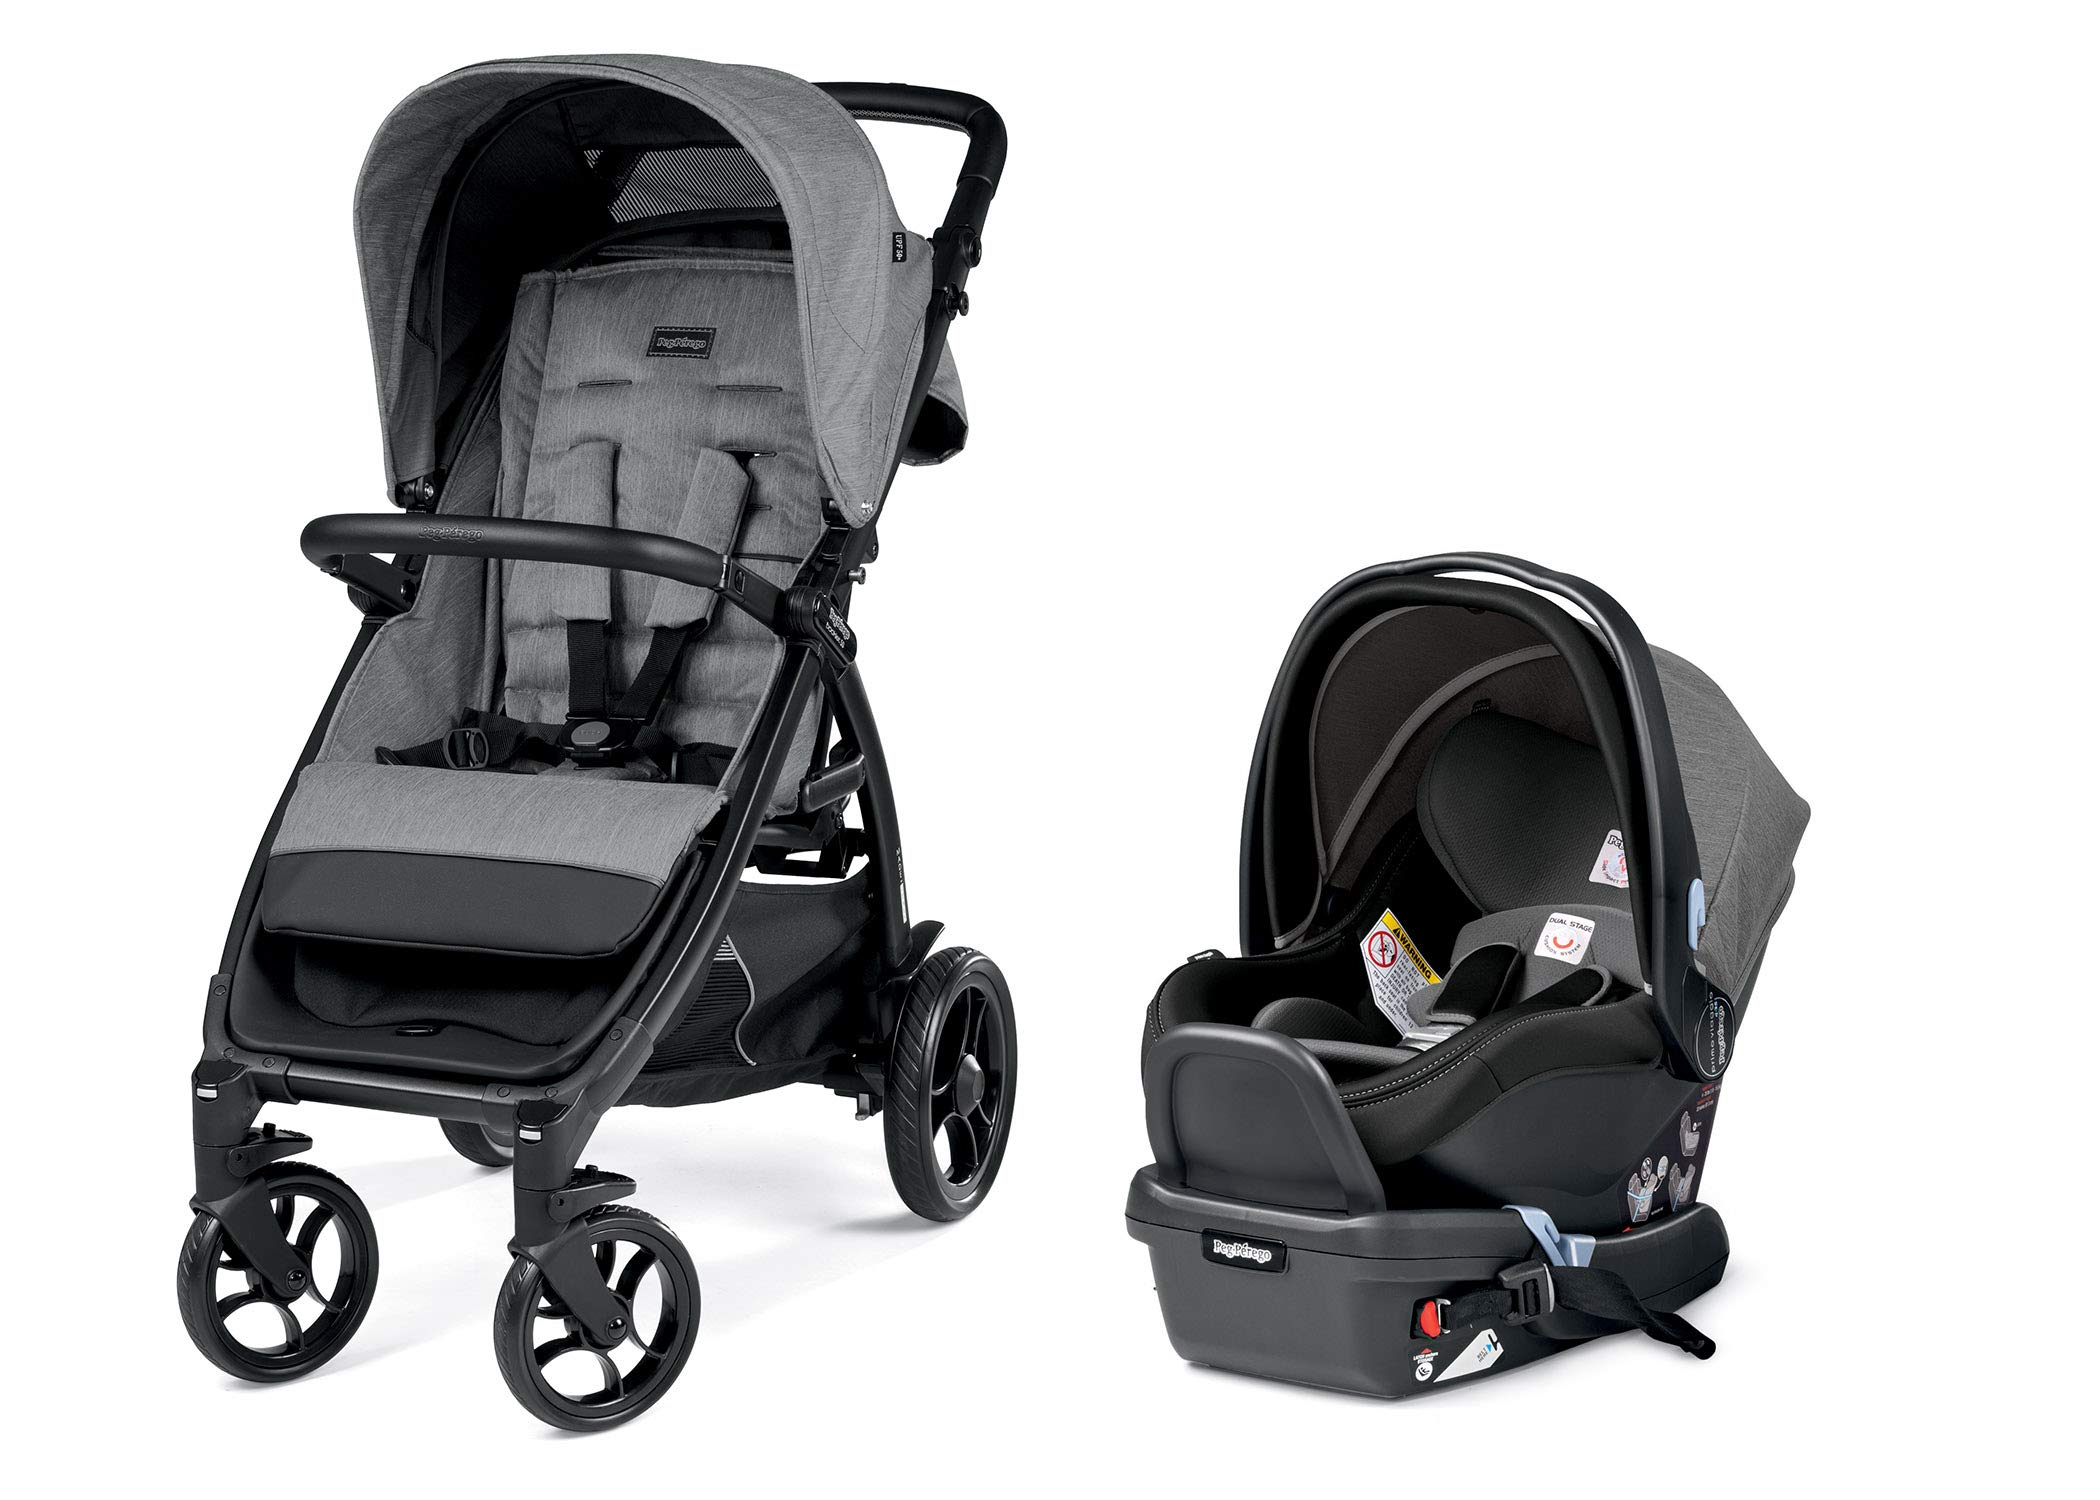 Peg Perego Booklet 50 Travel System, Atmosphere by Peg Perego